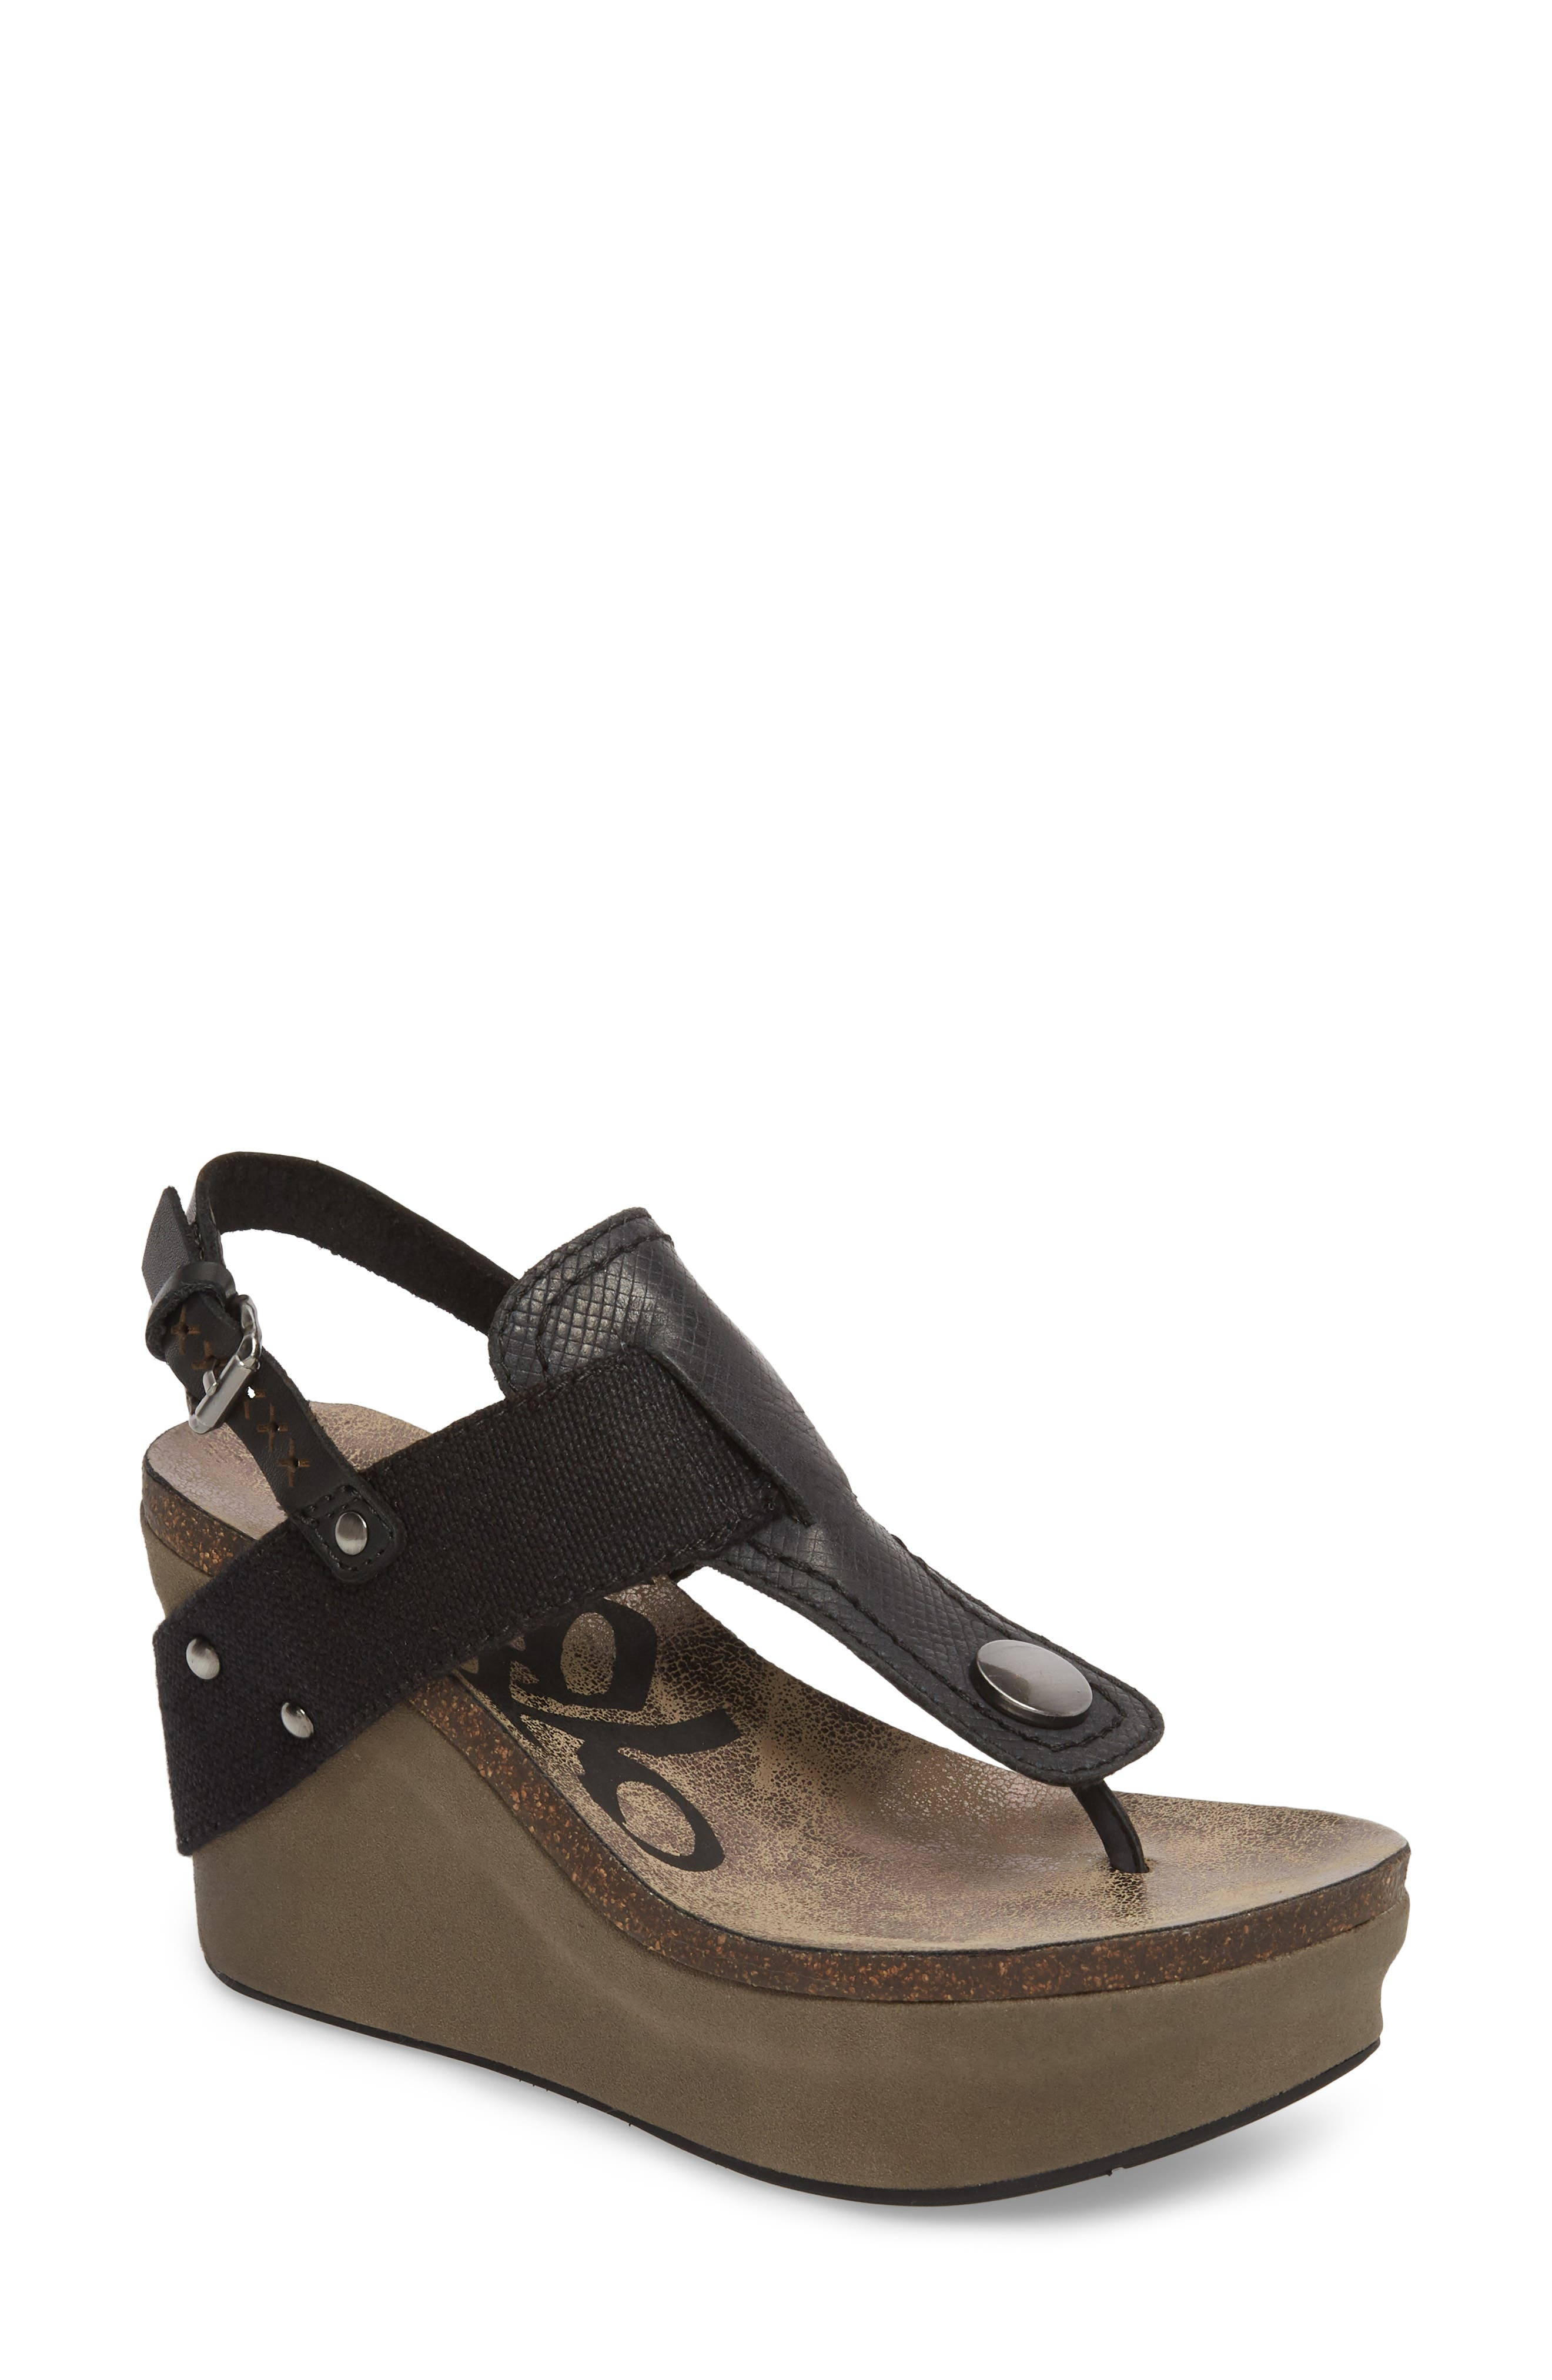 Joyride Wedge Sandal,                         Main,                         color, Black Leather